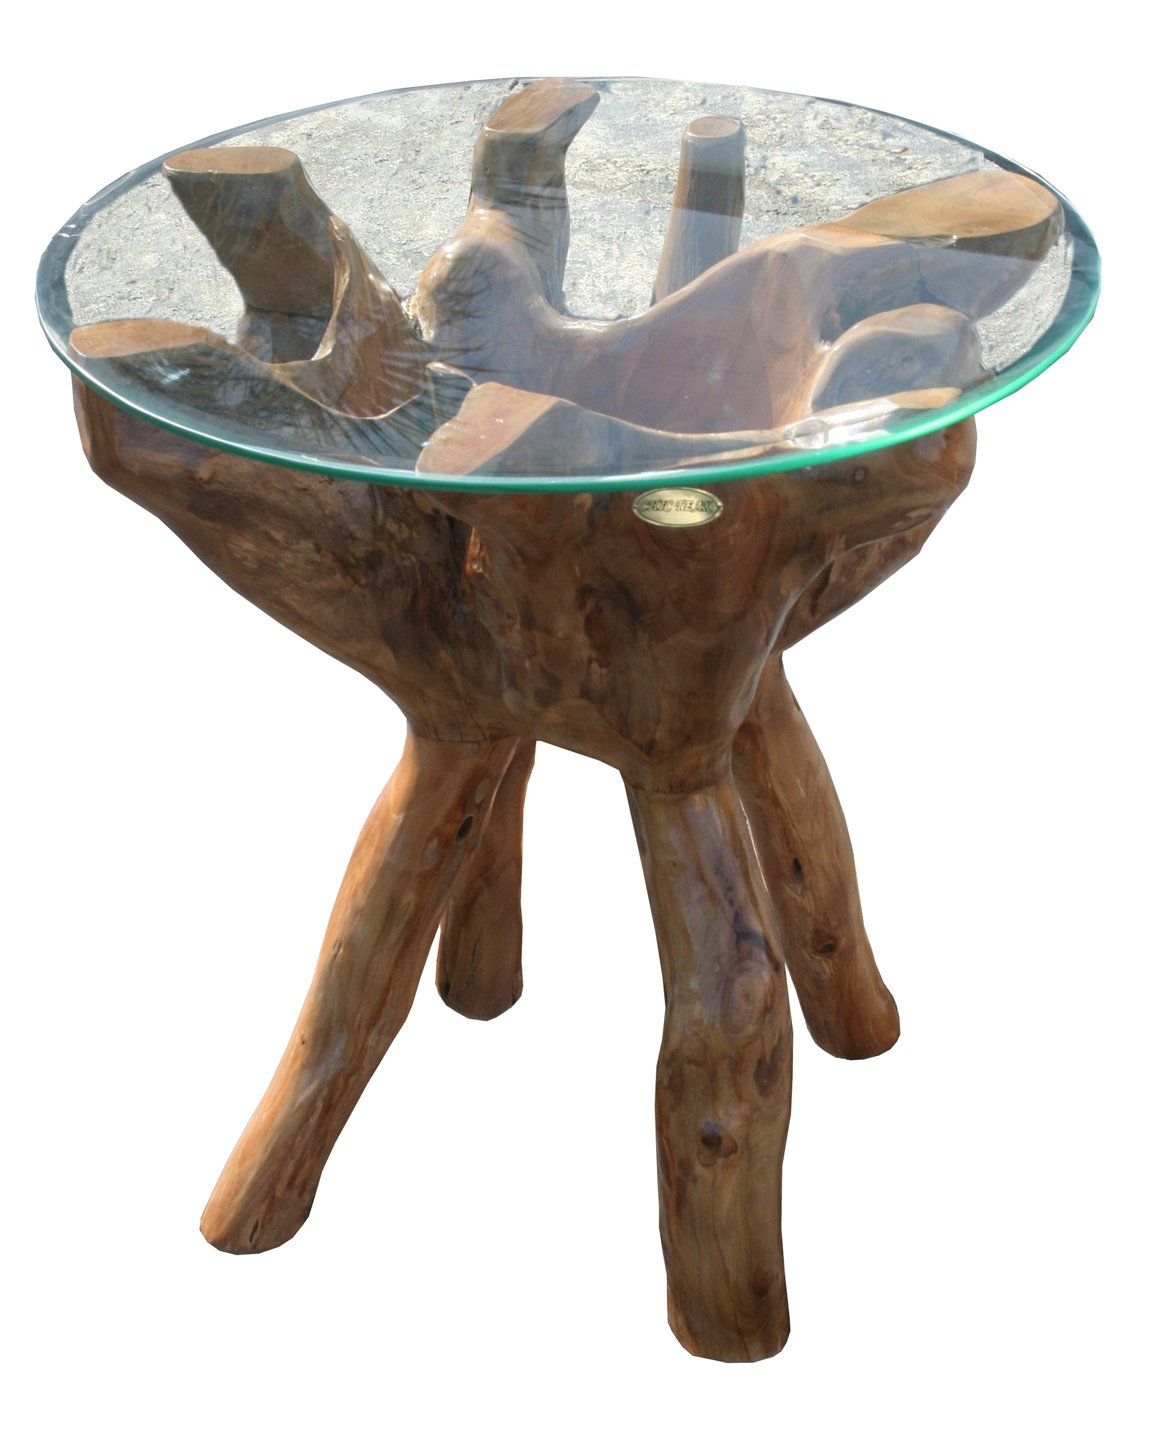 Teak Root Side Table Made By Chic Teak